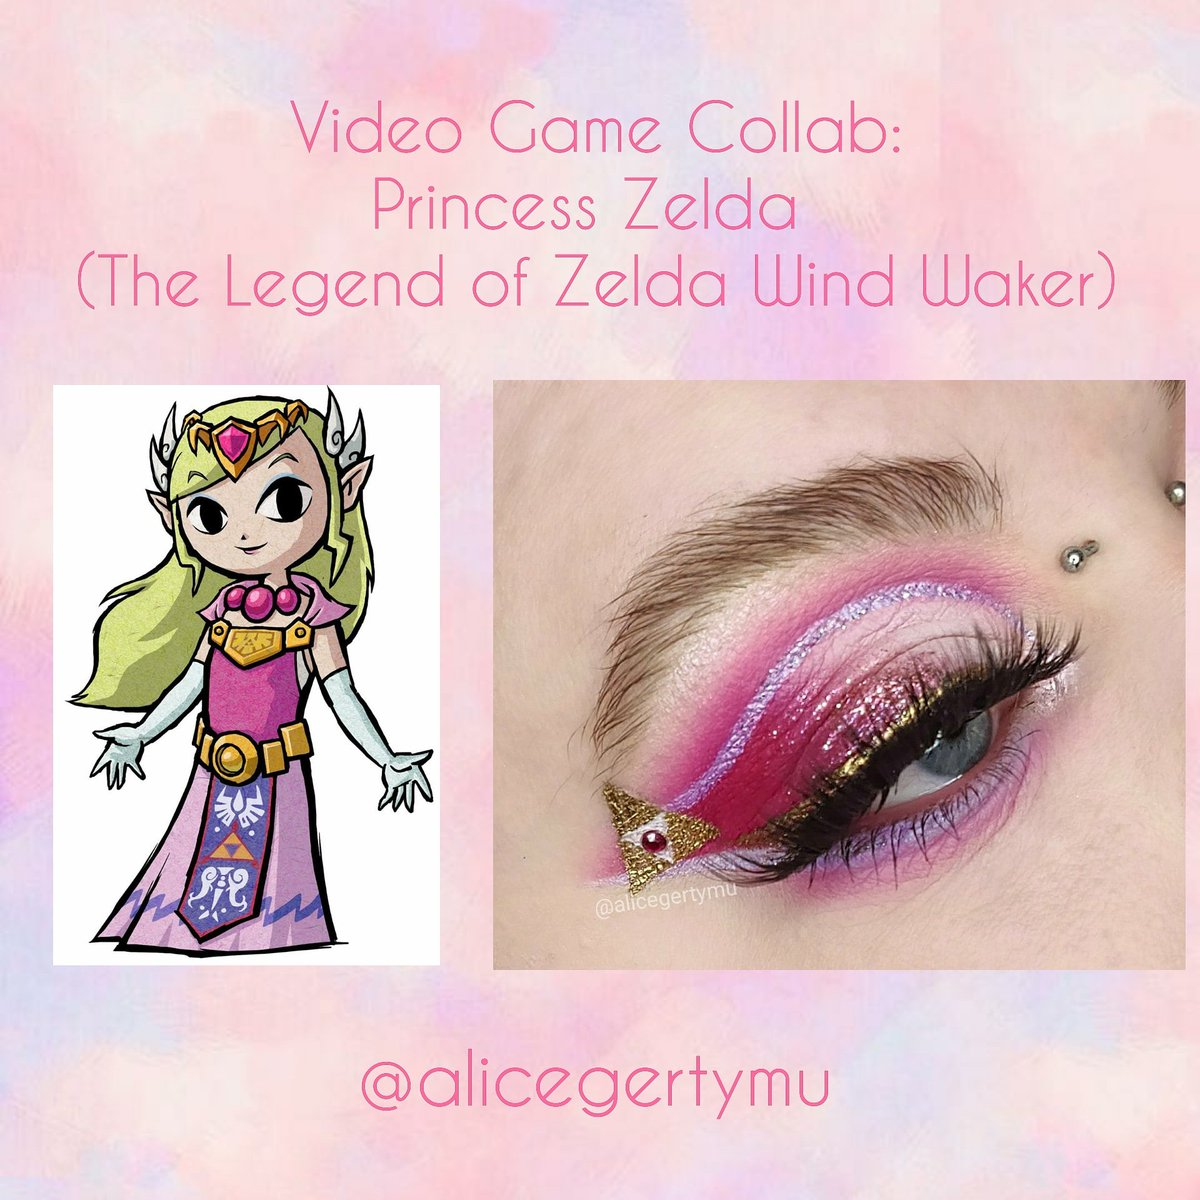 Video Game Collab: Princess Zelda (The Legend of Zelda Wind Waker)  @morphebrushes Jaclyn Hill Volume 2 palette: Dance Party, Lolli Mama and Certified @suvabeauty Hydra Liner @urbandecaycosmetics Heavy Metal liner: Volume @mehronmakeup Metallic Powder  #makeup #undiscoveredmuas pic.twitter.com/IlwCCbIbEo